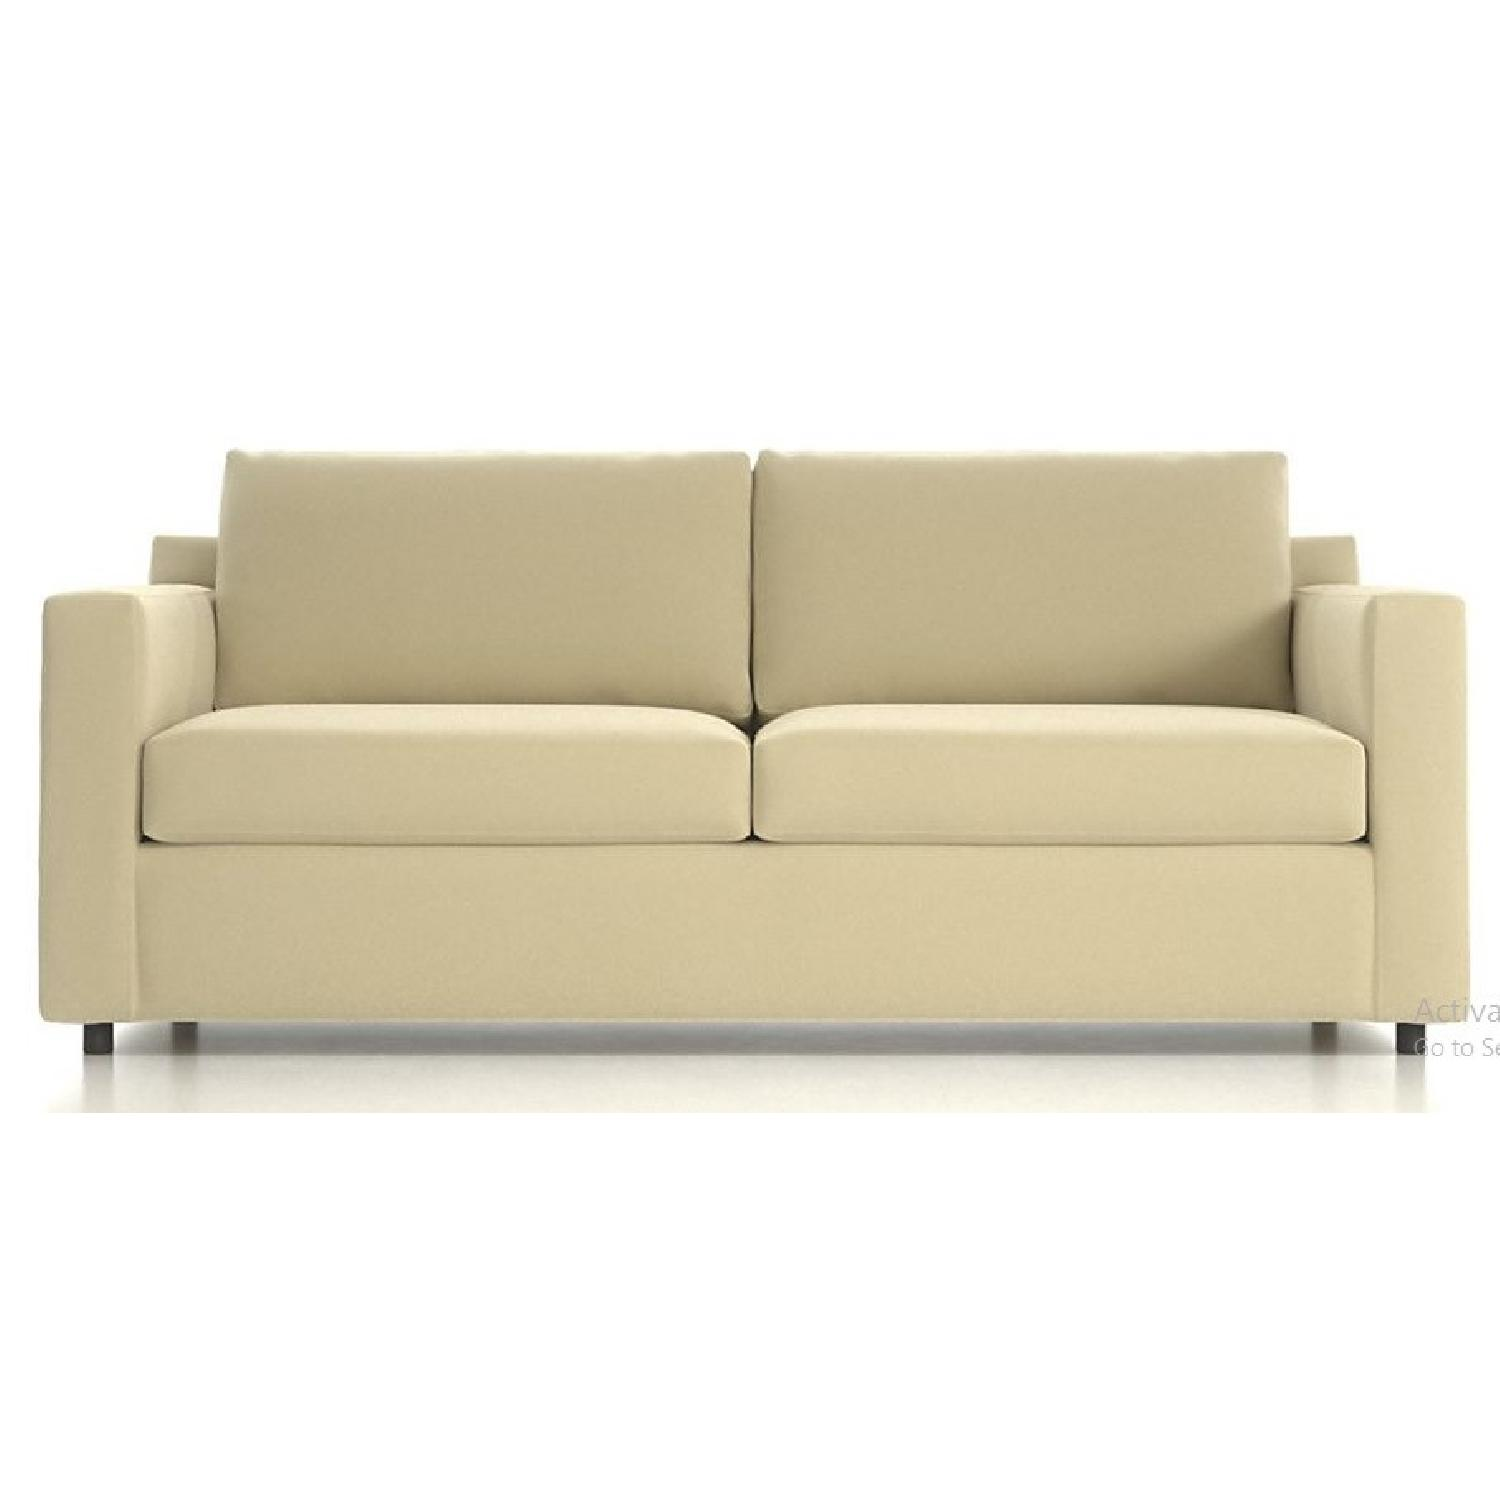 Crate & Barrel Queen Sleeper Sofa - image-0